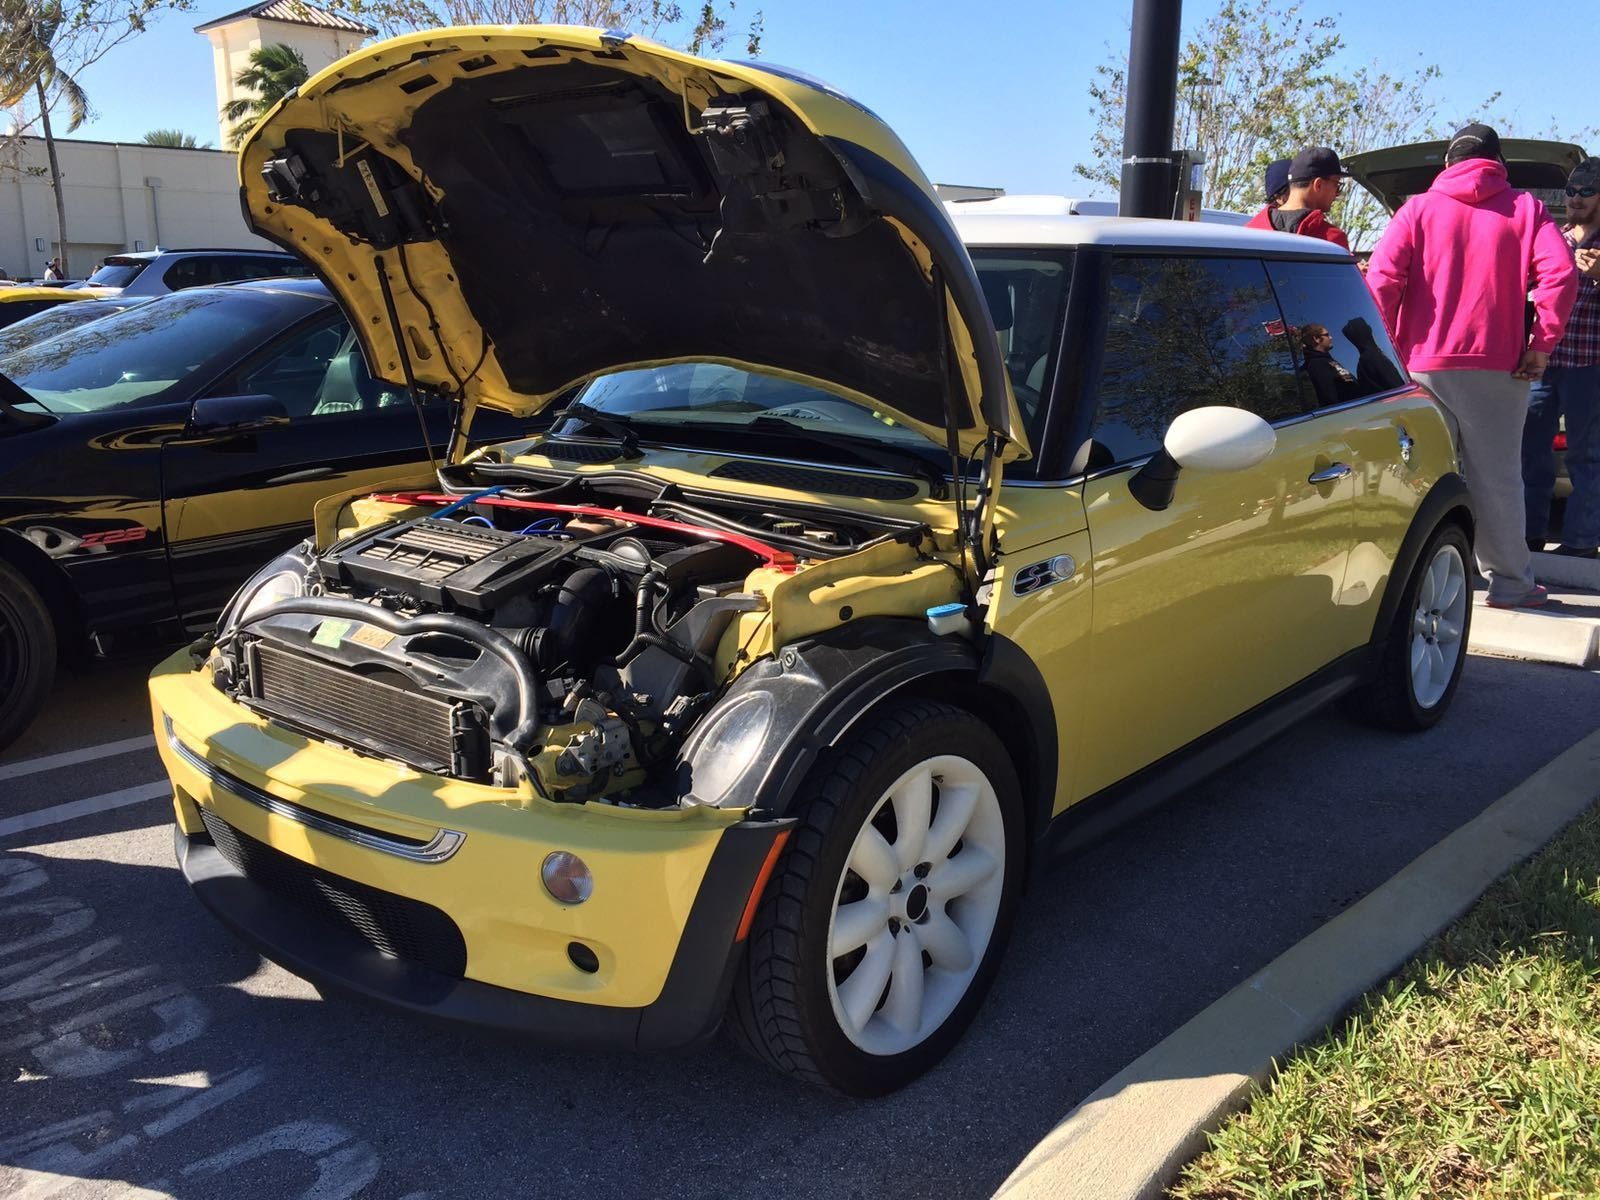 2003 Liquid Yellow Mini Cooper S Picture Mods Upgrades